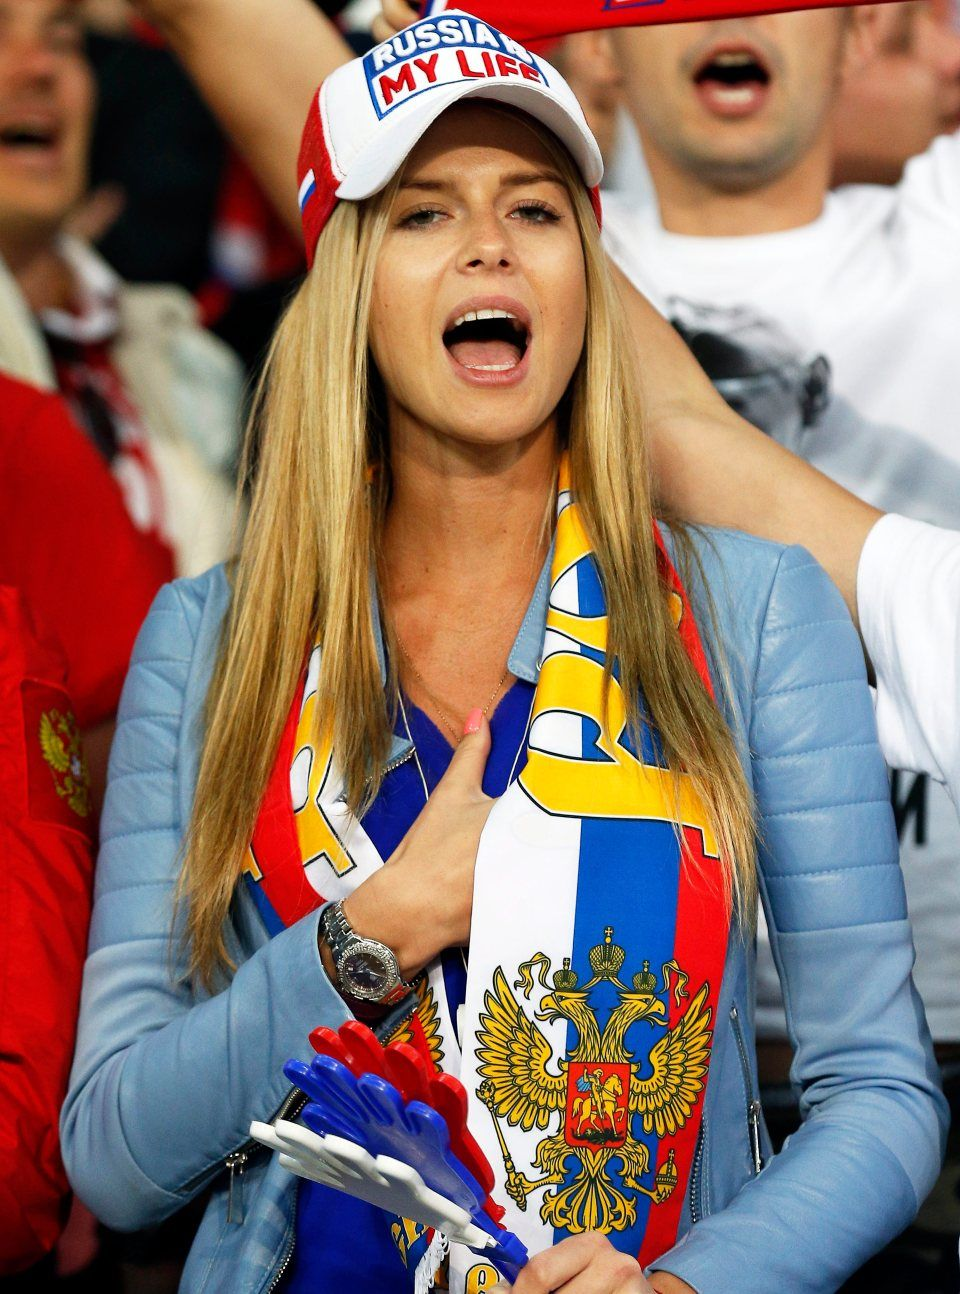 100 photos of hot female fans in fifa world cup 2018 | futbol